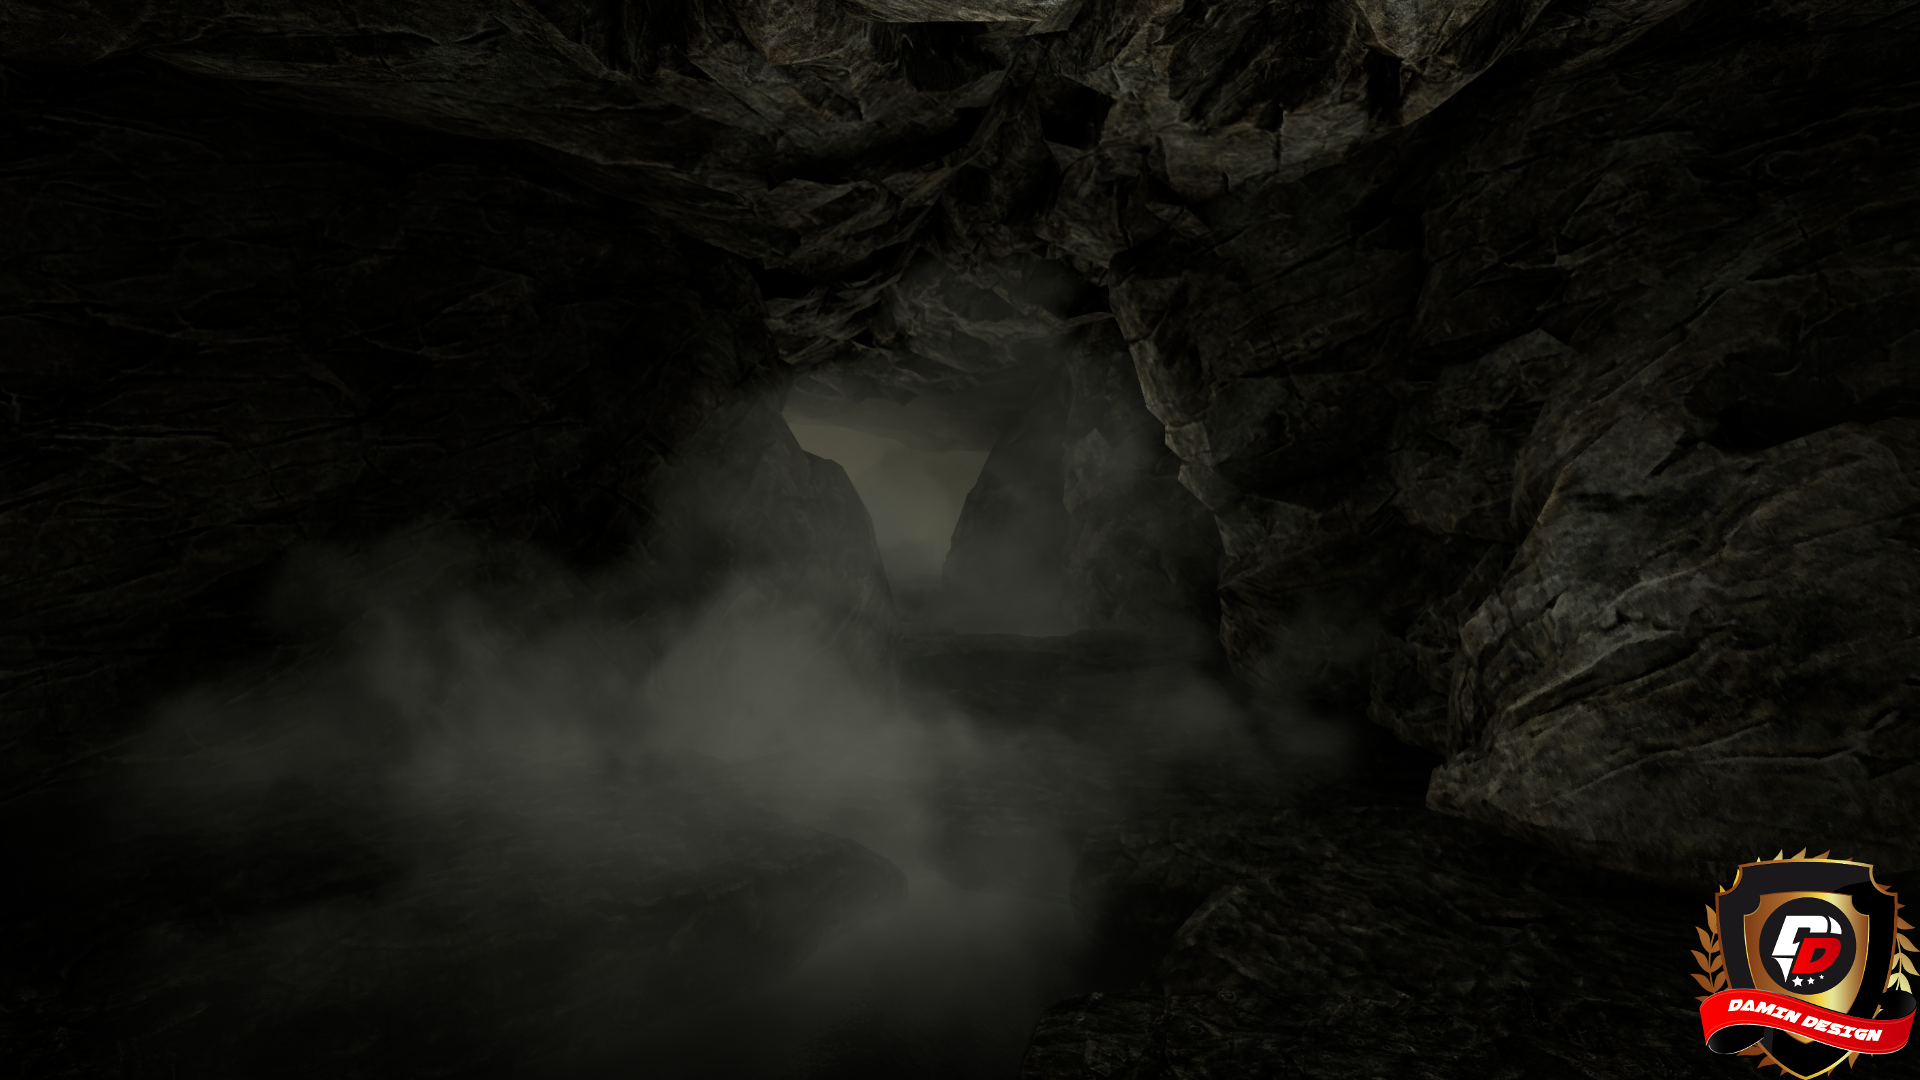 Unreal Engine 4 Geysers by DaminDesign